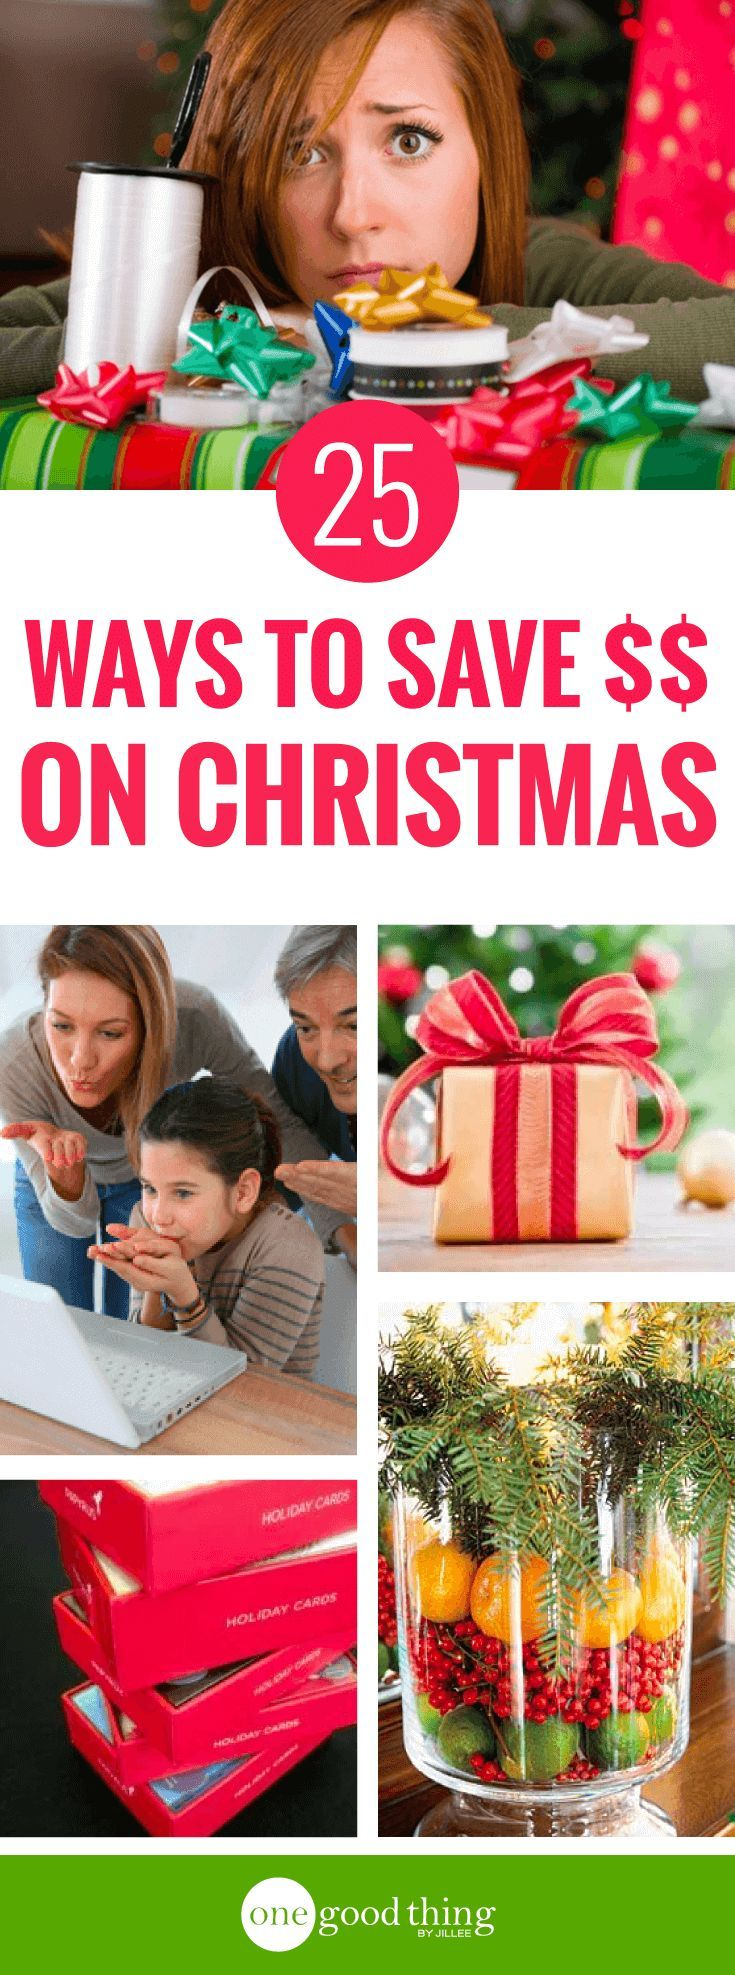 Don�t stress out! Here are 25 practical tips for saving money and staying sane while navigating all the holiday spending madness! #christmasspending #holidayspending #moneysavingtips